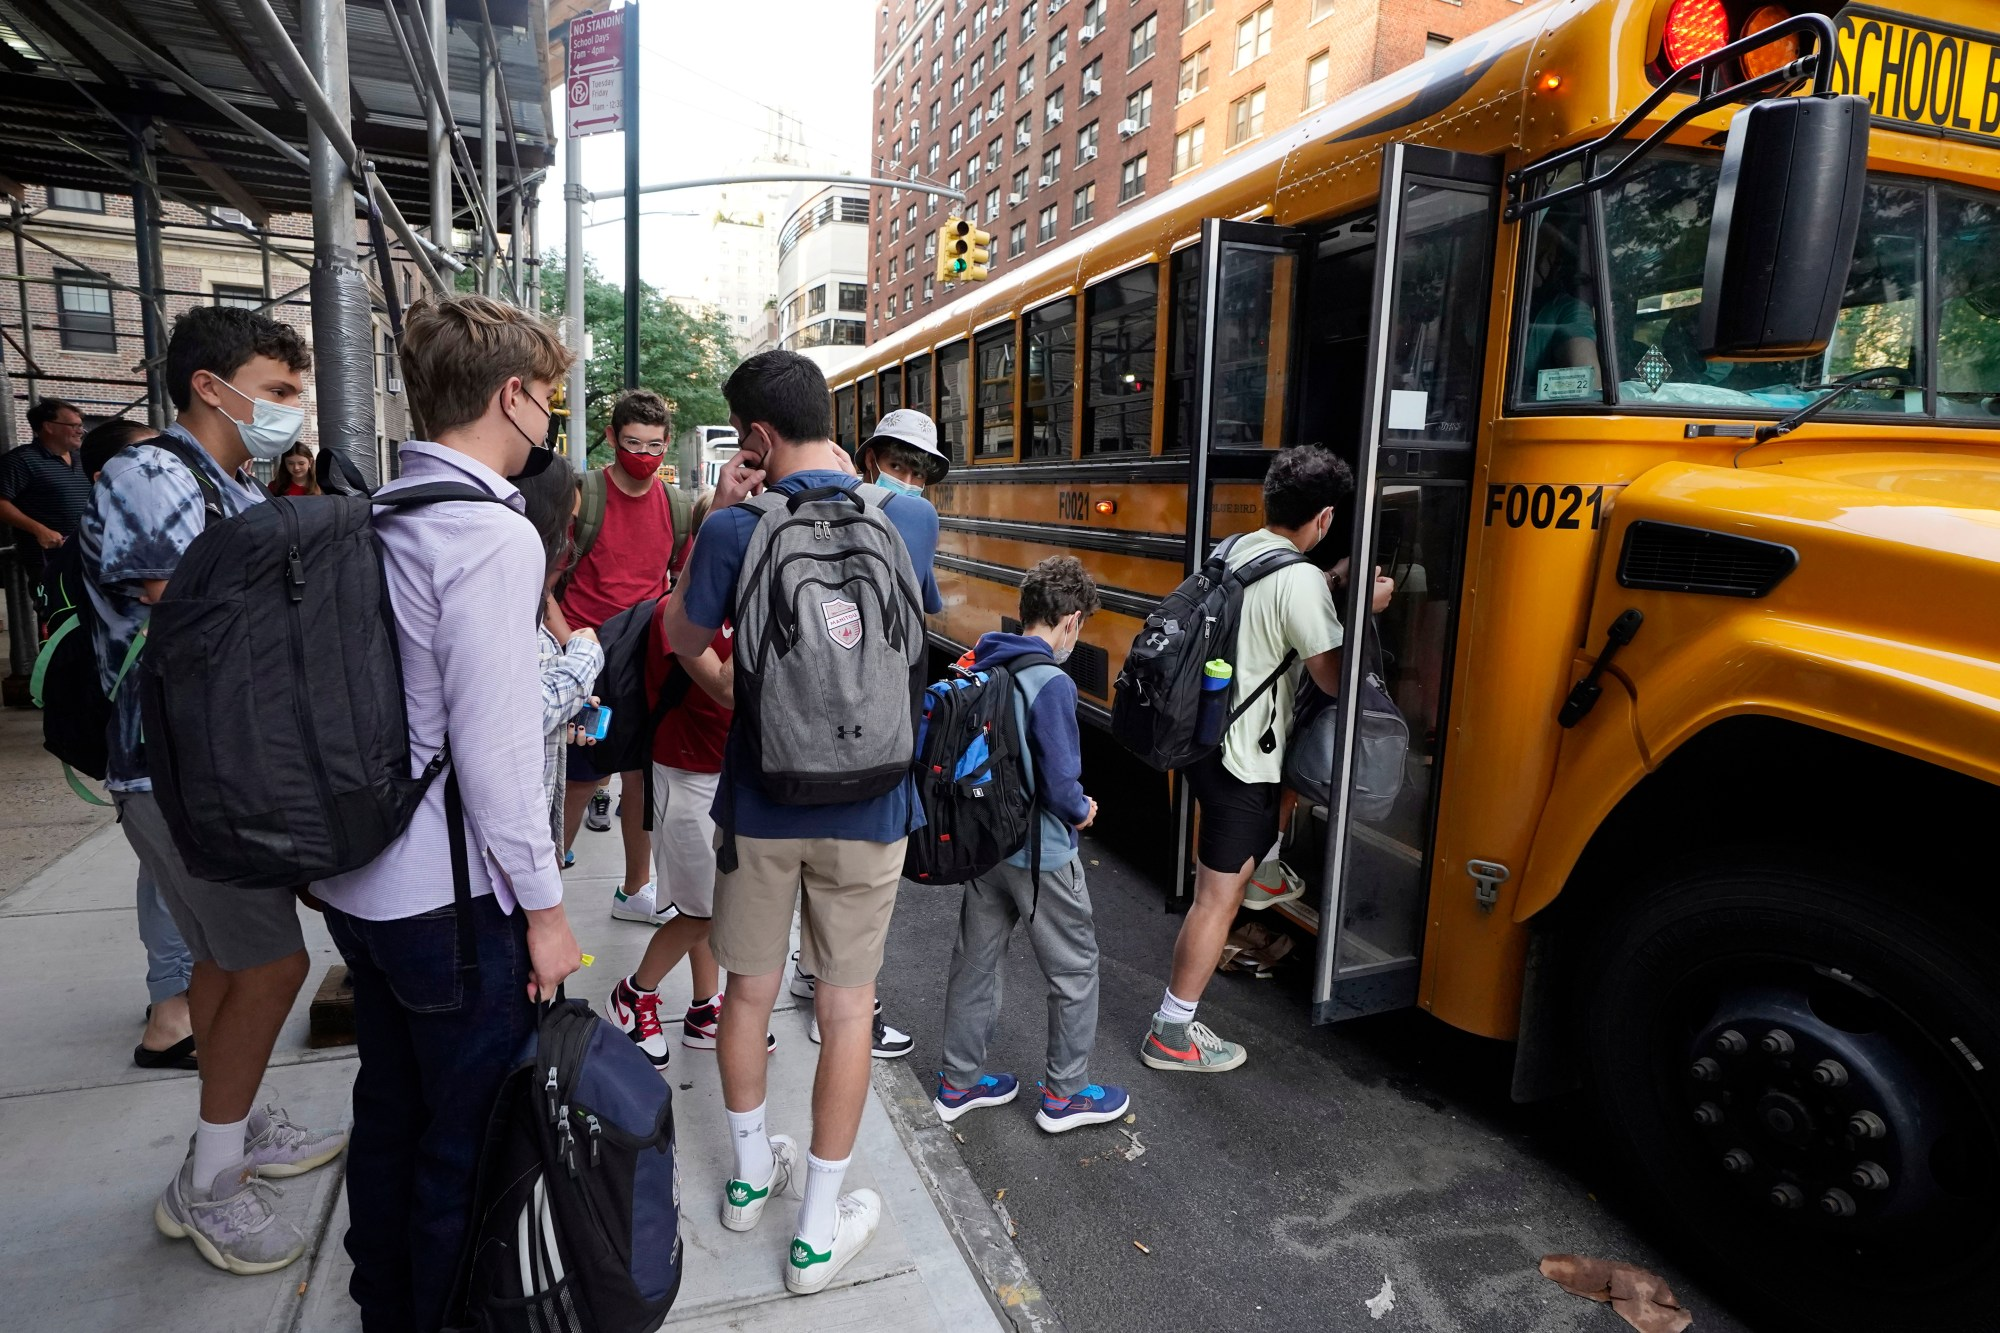 In this Sept. 13, 2021, file photo, students board a school bus on New York's Upper West Side. (AP Photo/Richard Drew, File)